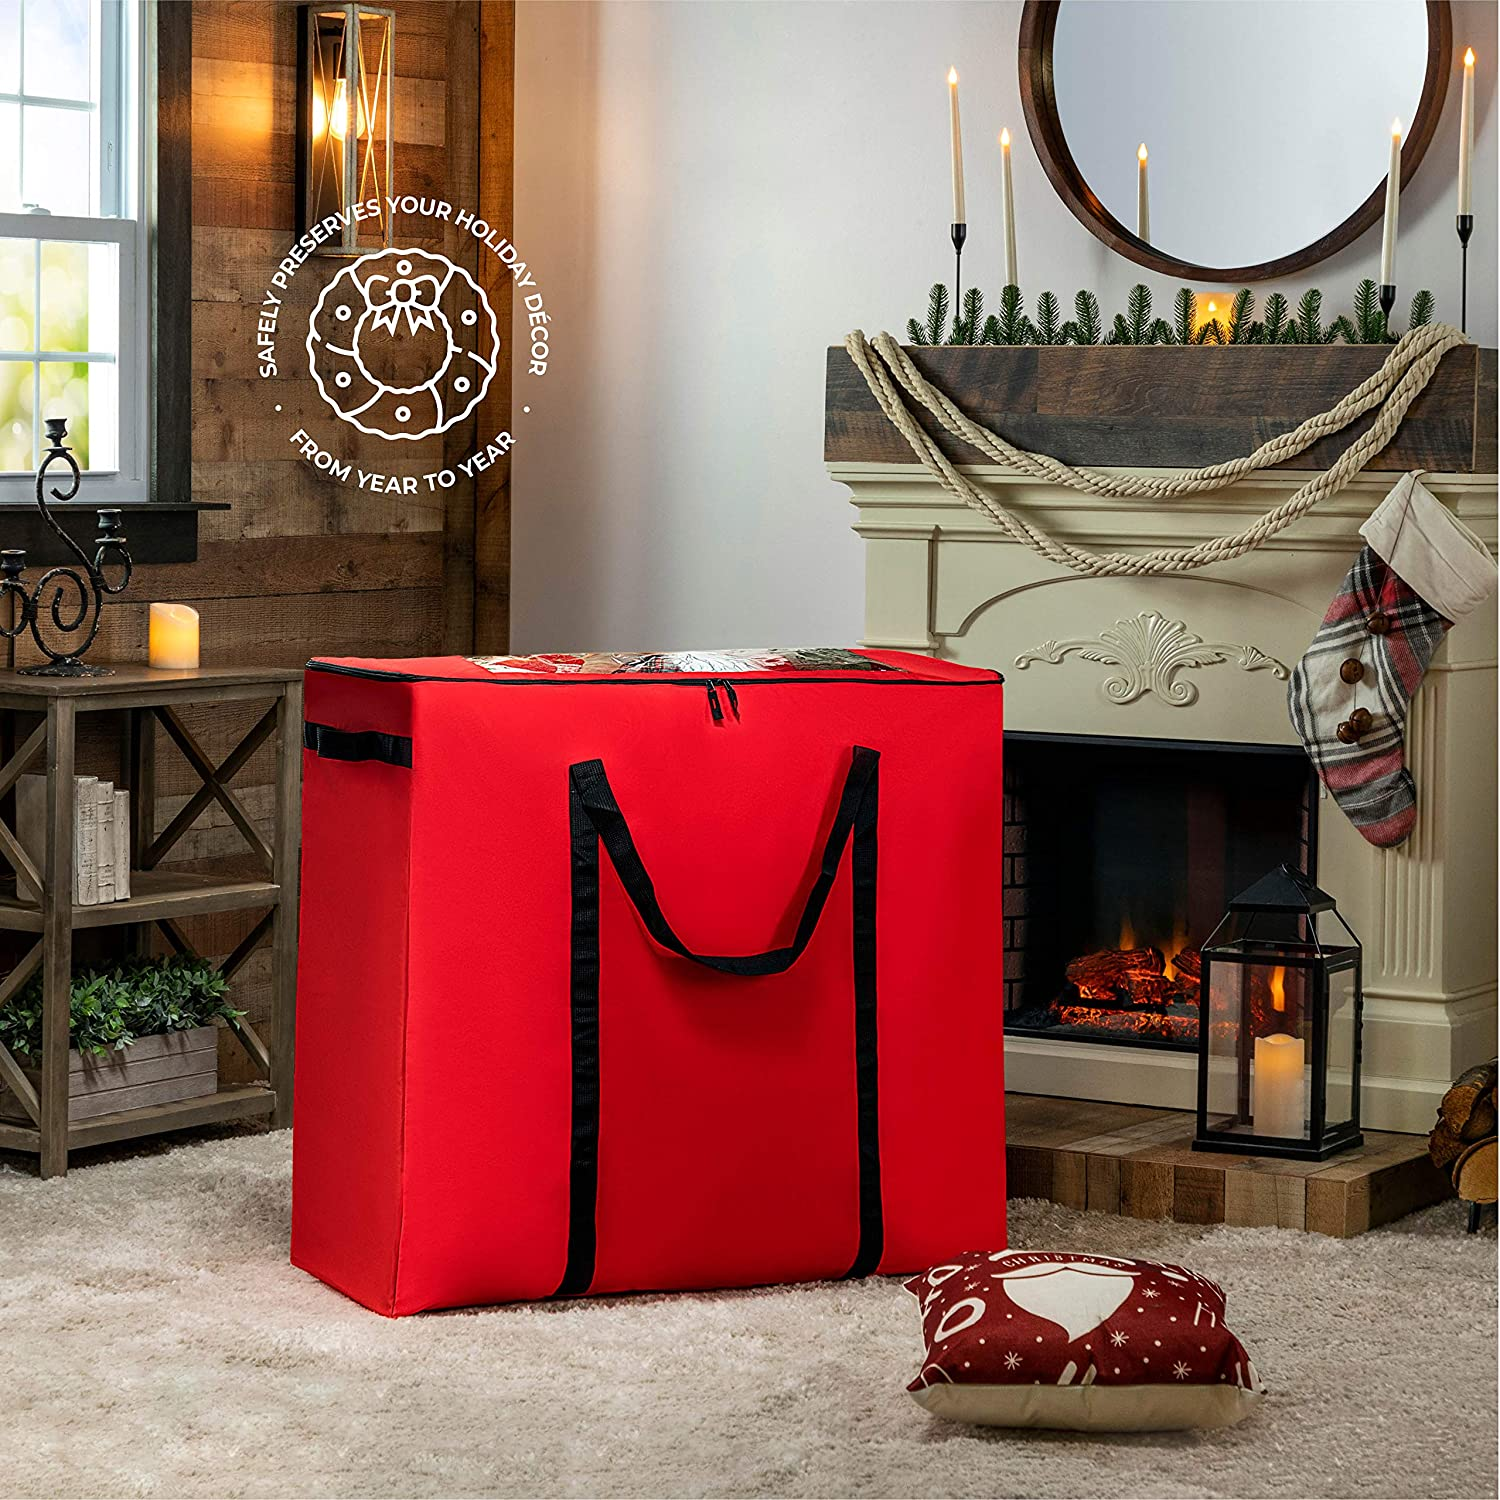 Giftwrap Seasonal//Christmas XLarge Rolling Accessory Storage Bag//Container Xmas Decoration Storage Bag for All Christmas Decorations Perfect for Tabletop Trees Ornaments Garlands Figurines Etc.